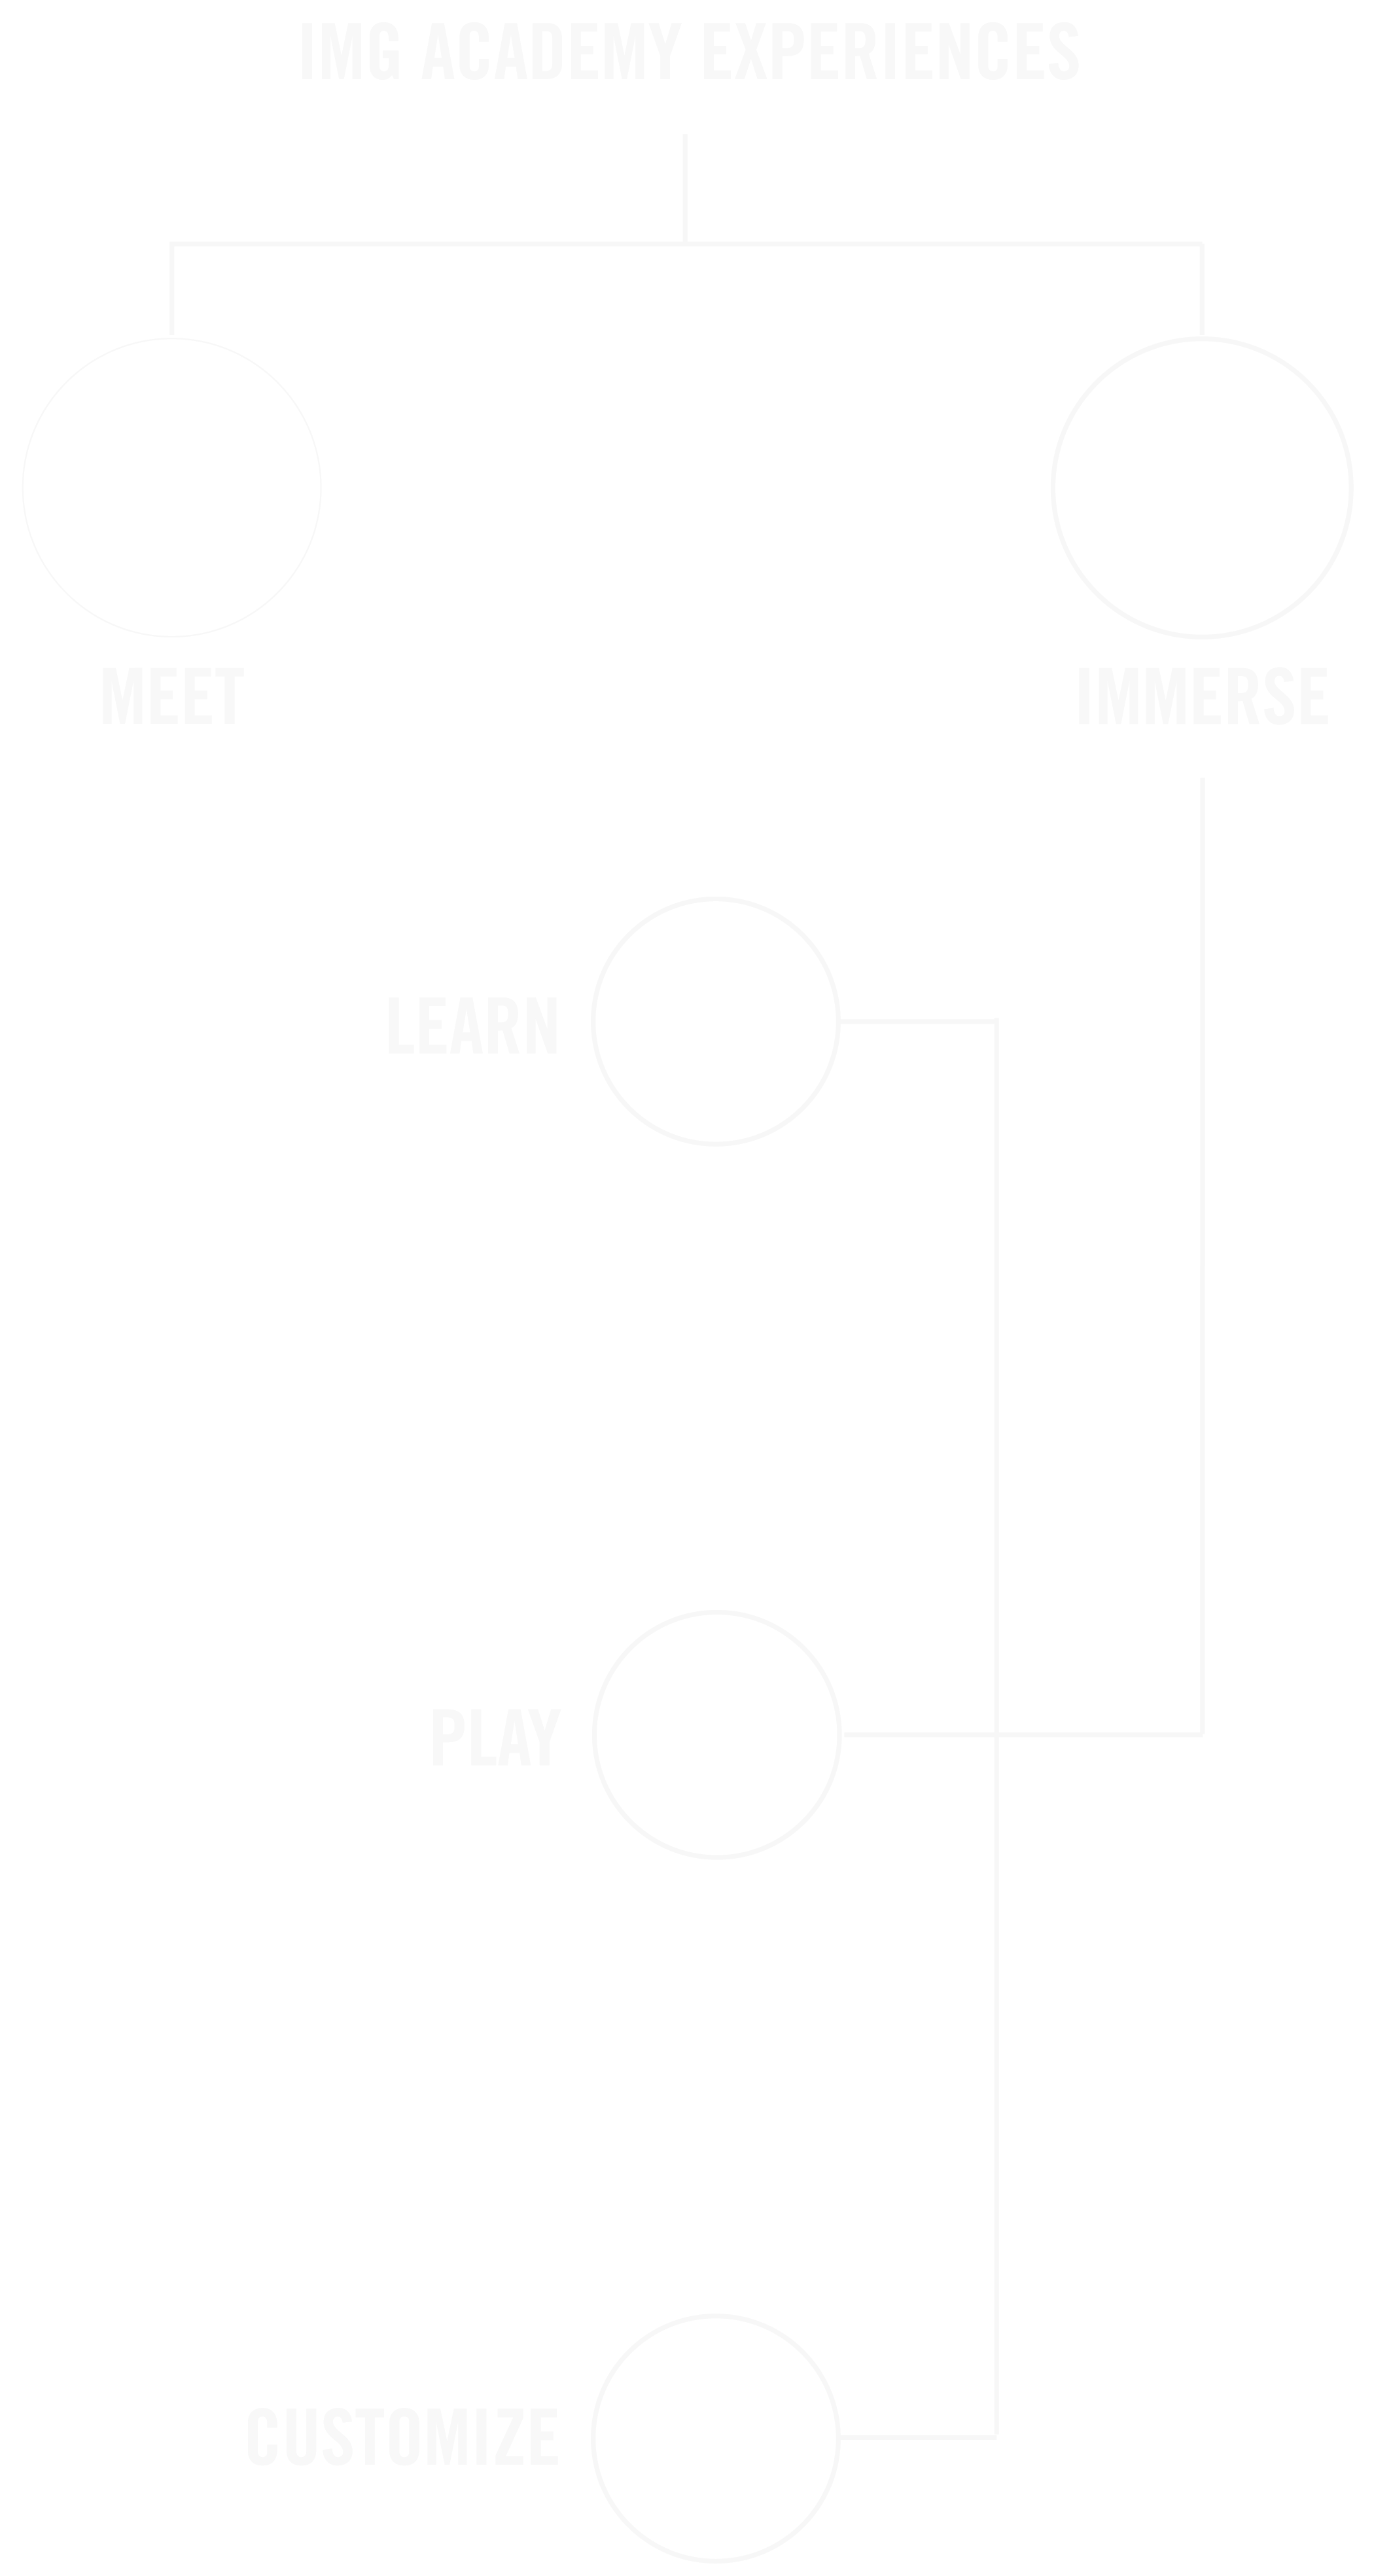 meet, immerse, play, learn, customize